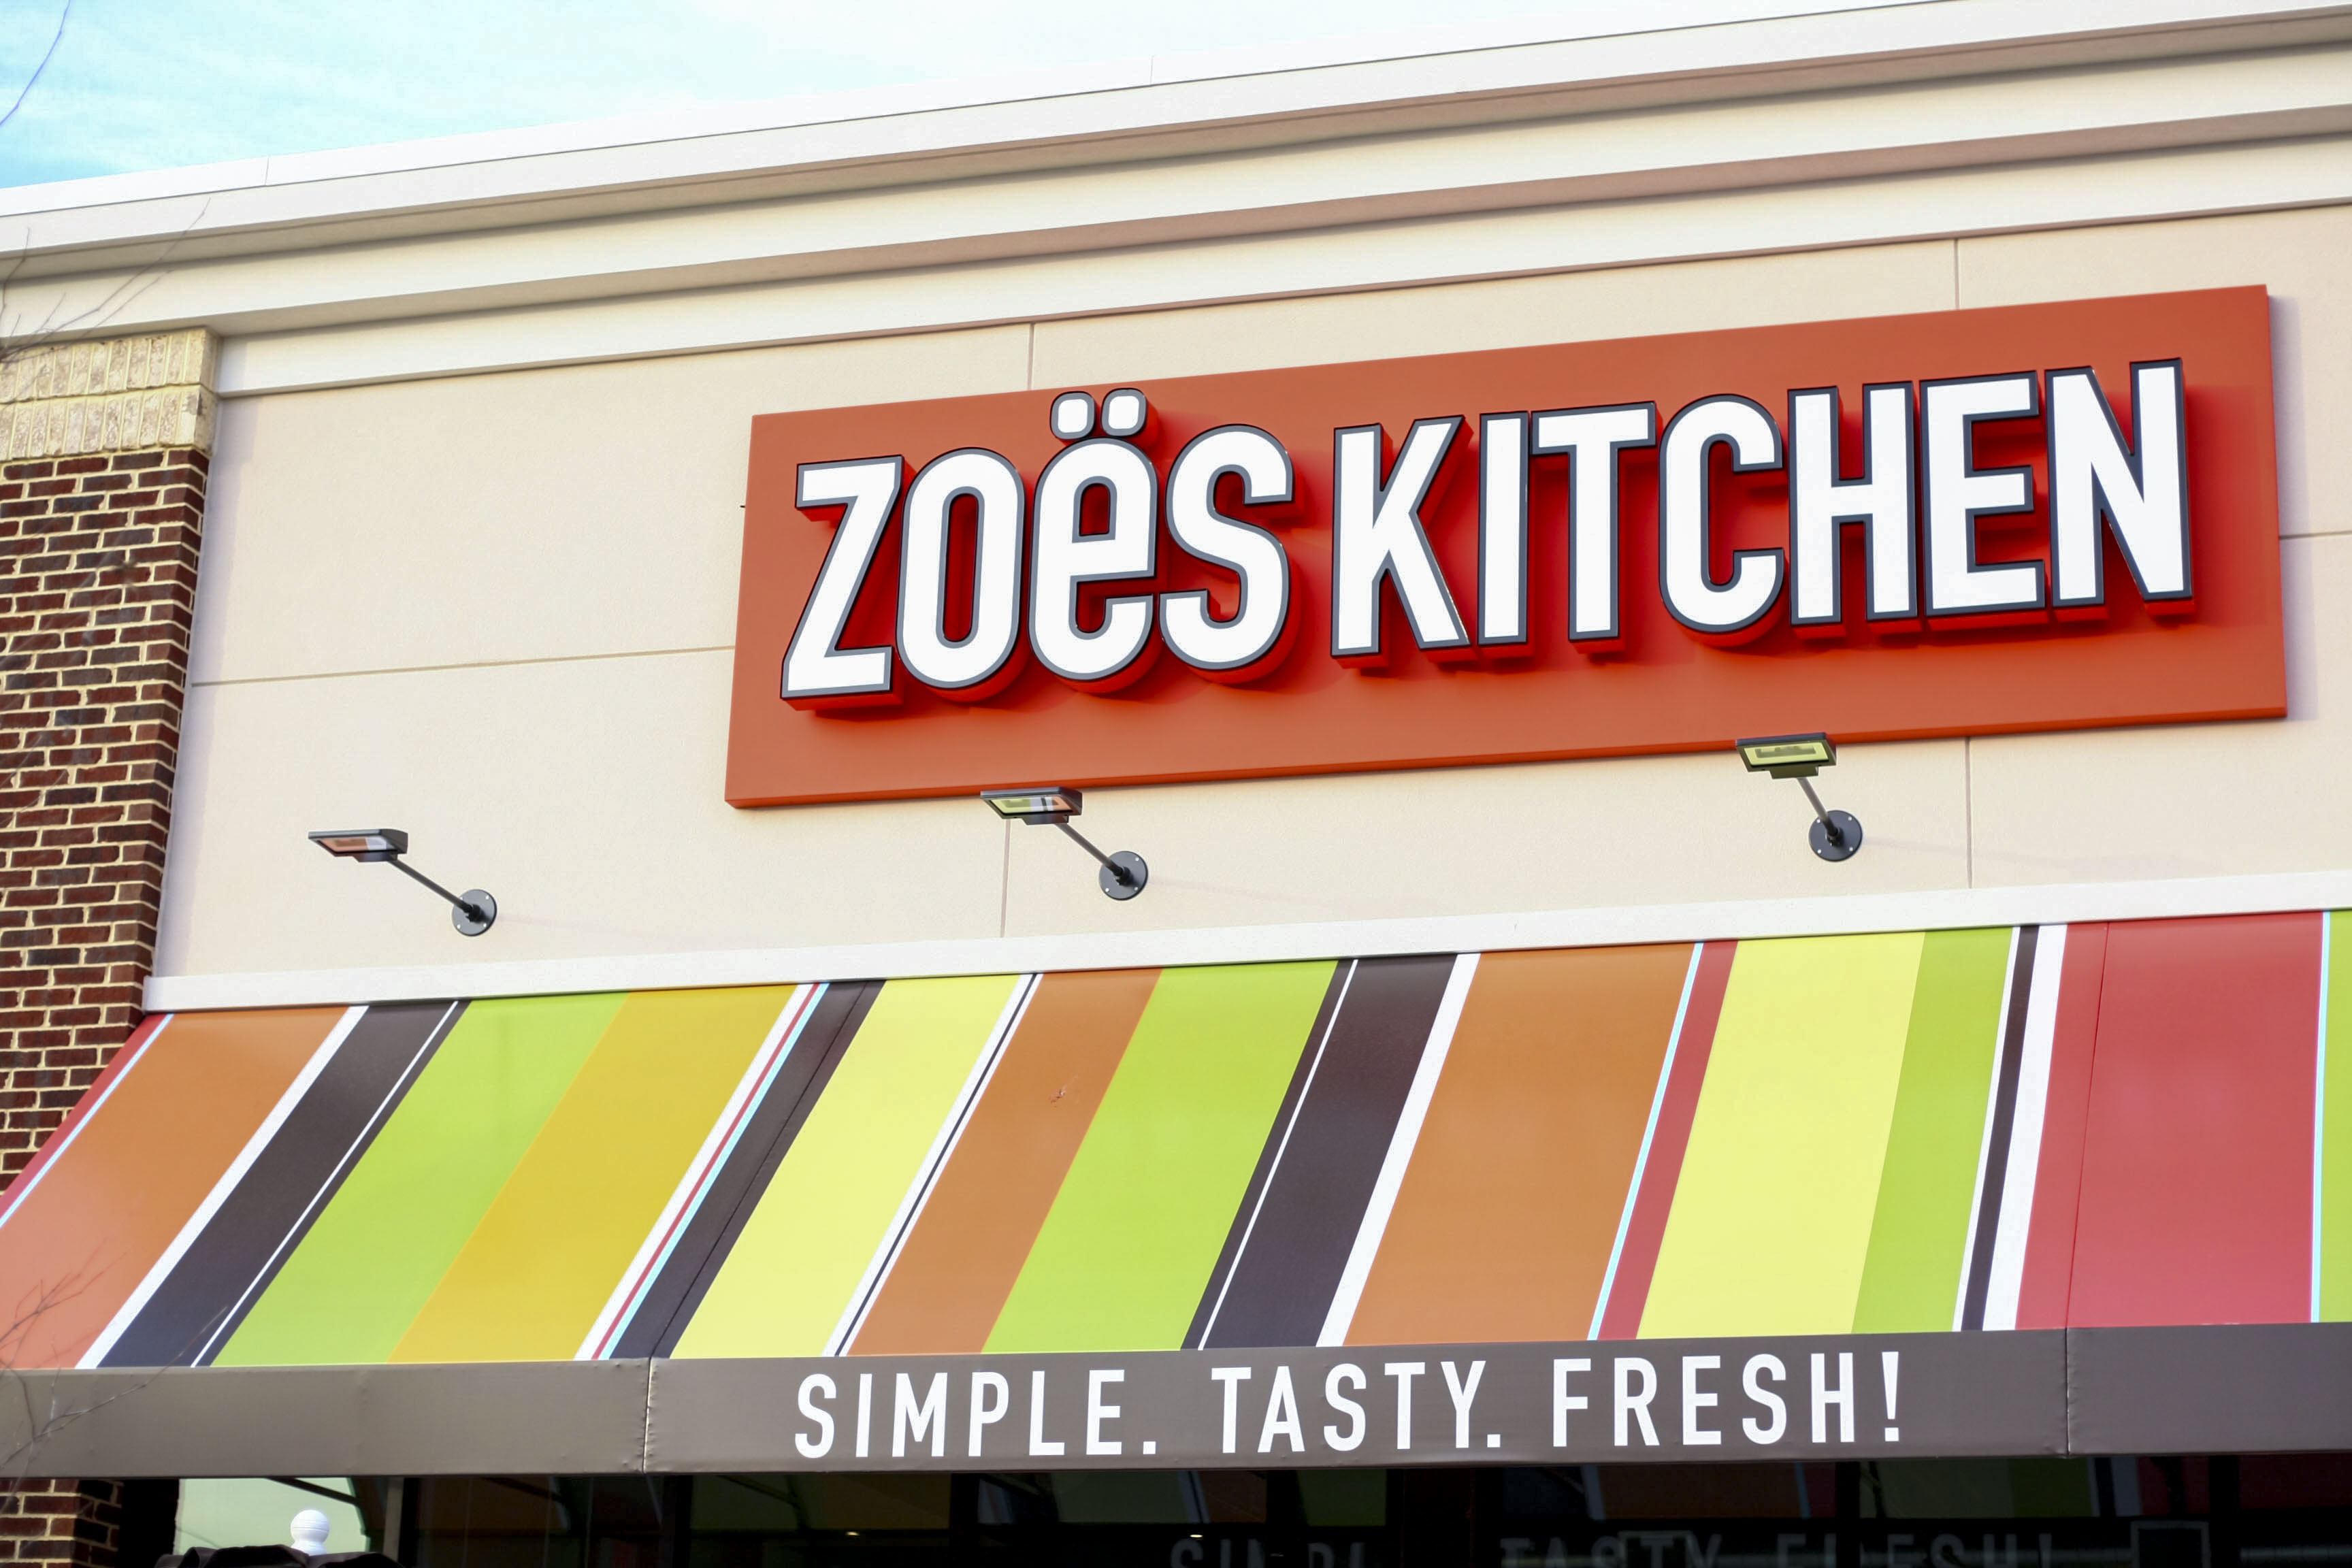 Zoes kitchen location - Cheap spring